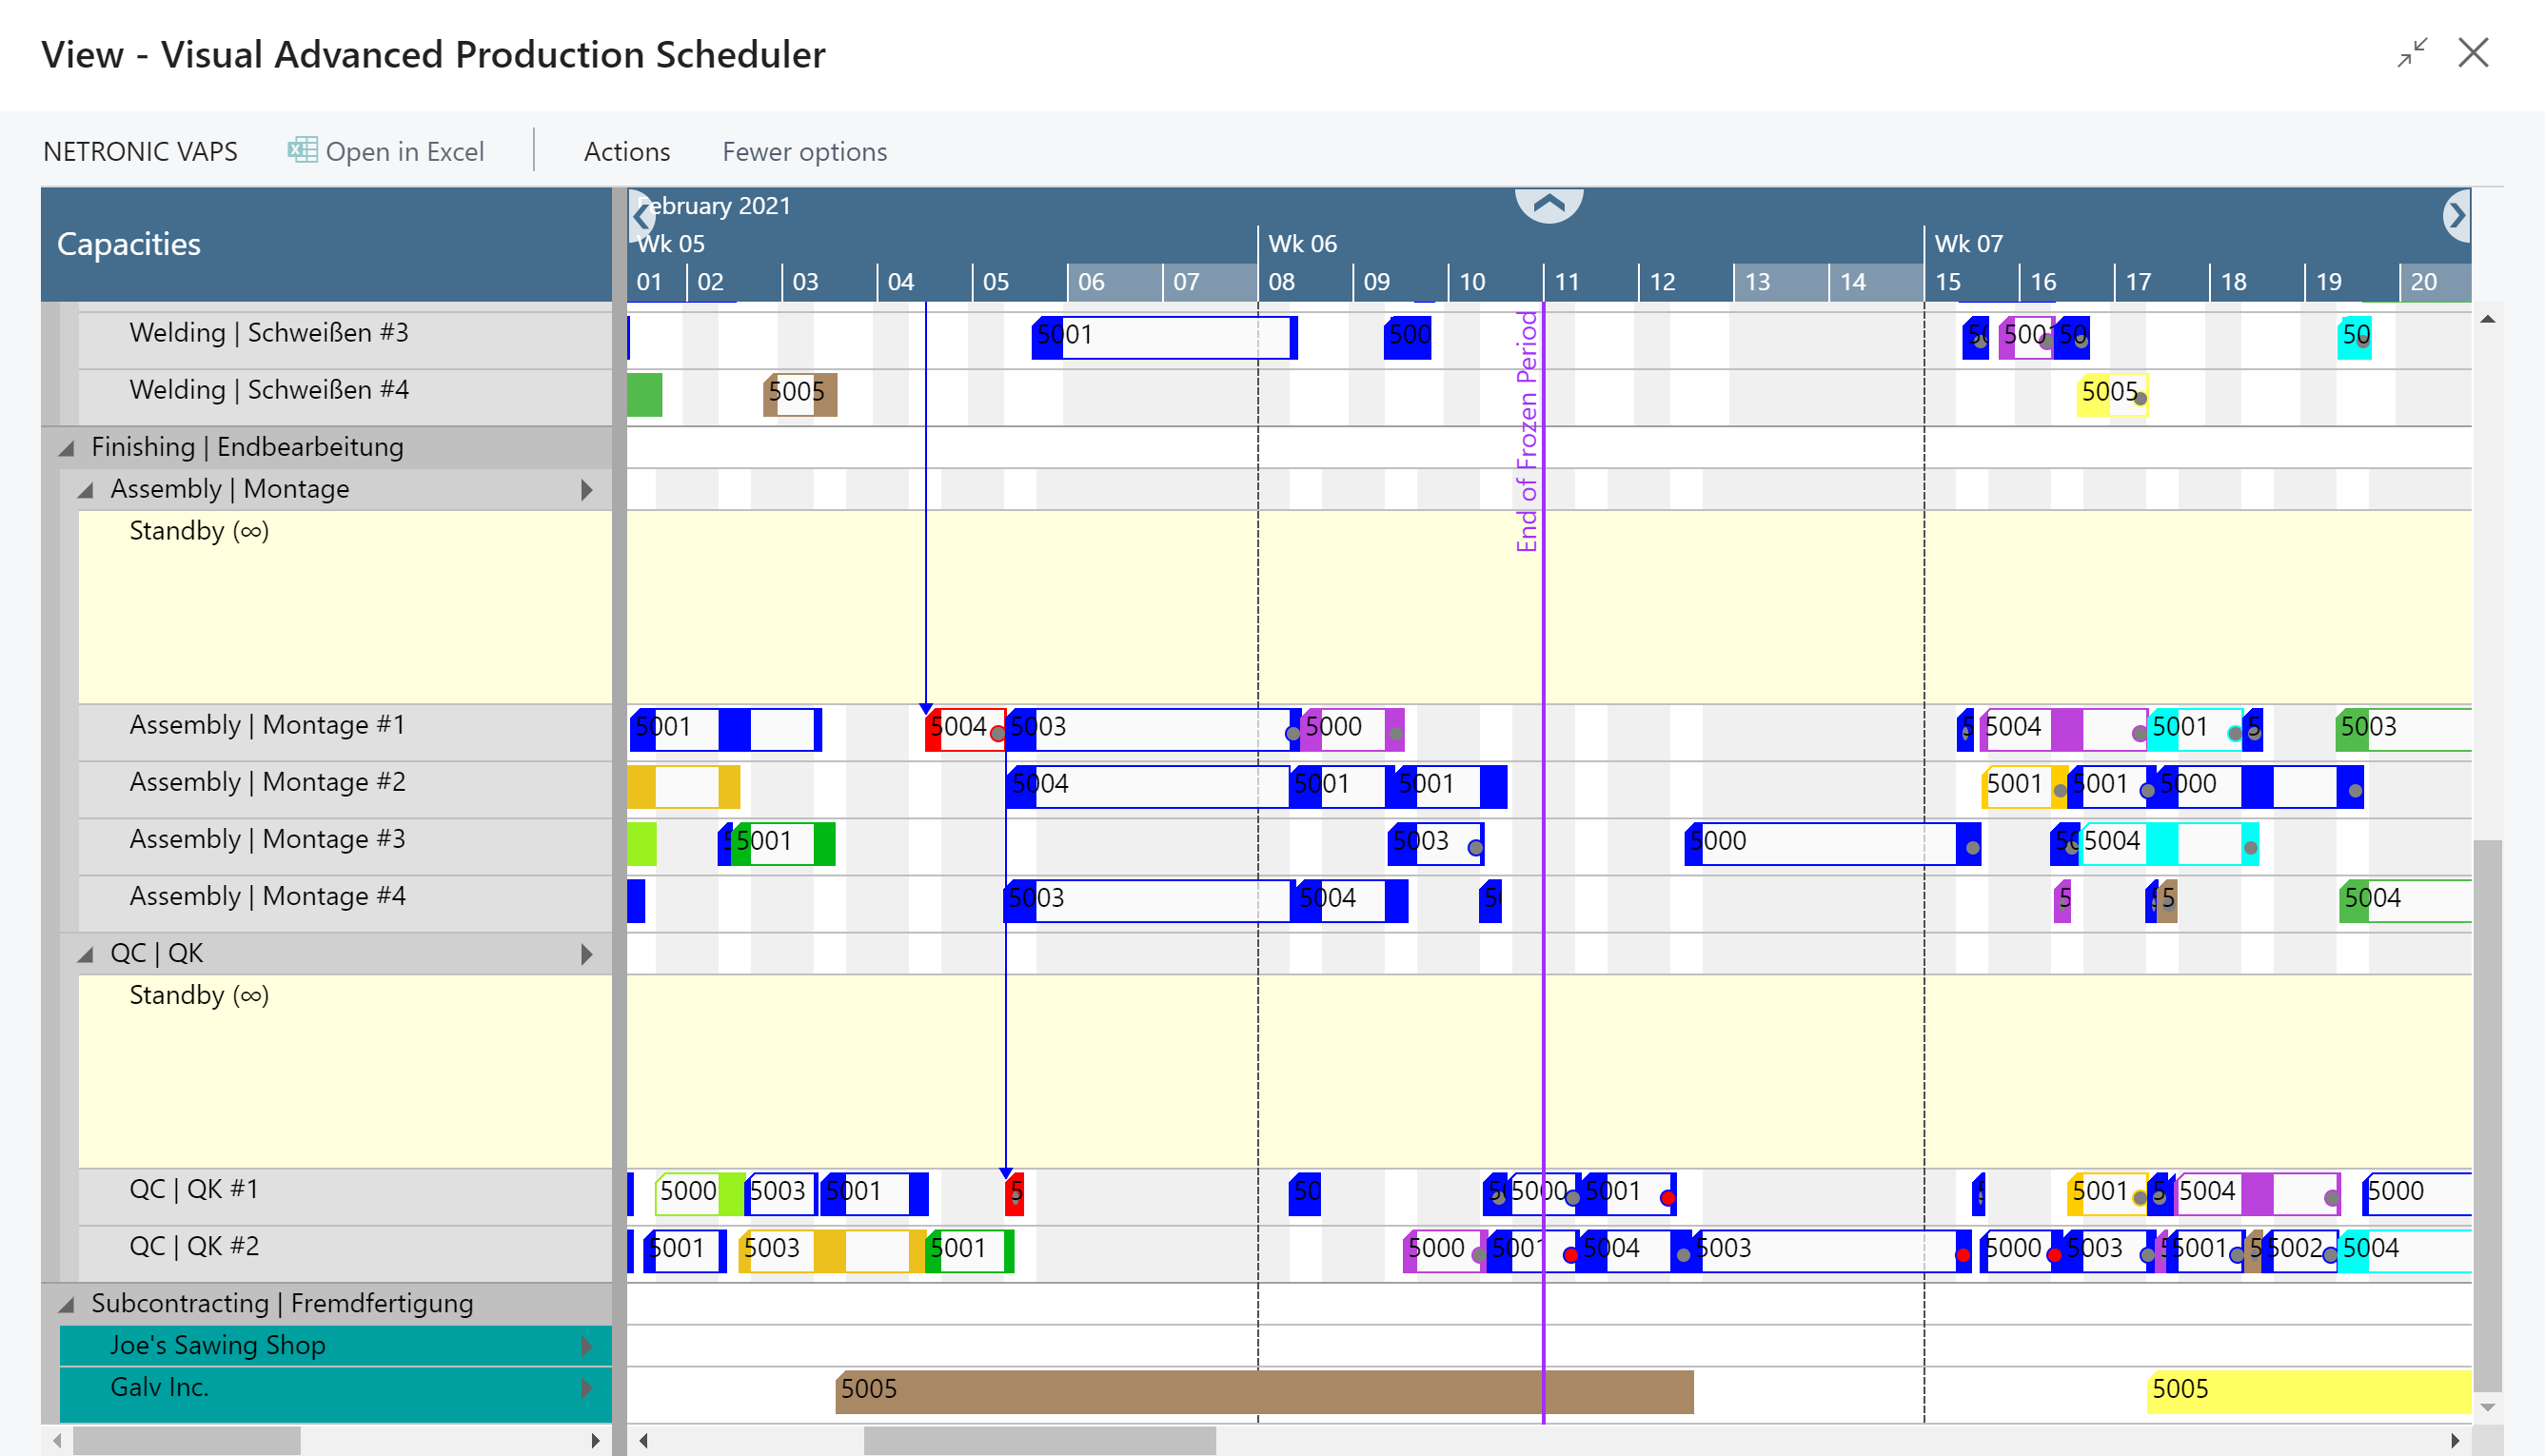 Visual Advanced Production Scheduler for Microsoft Dynamics 365 Business Central - Downstream Impact of Finite Capacity Scheduling